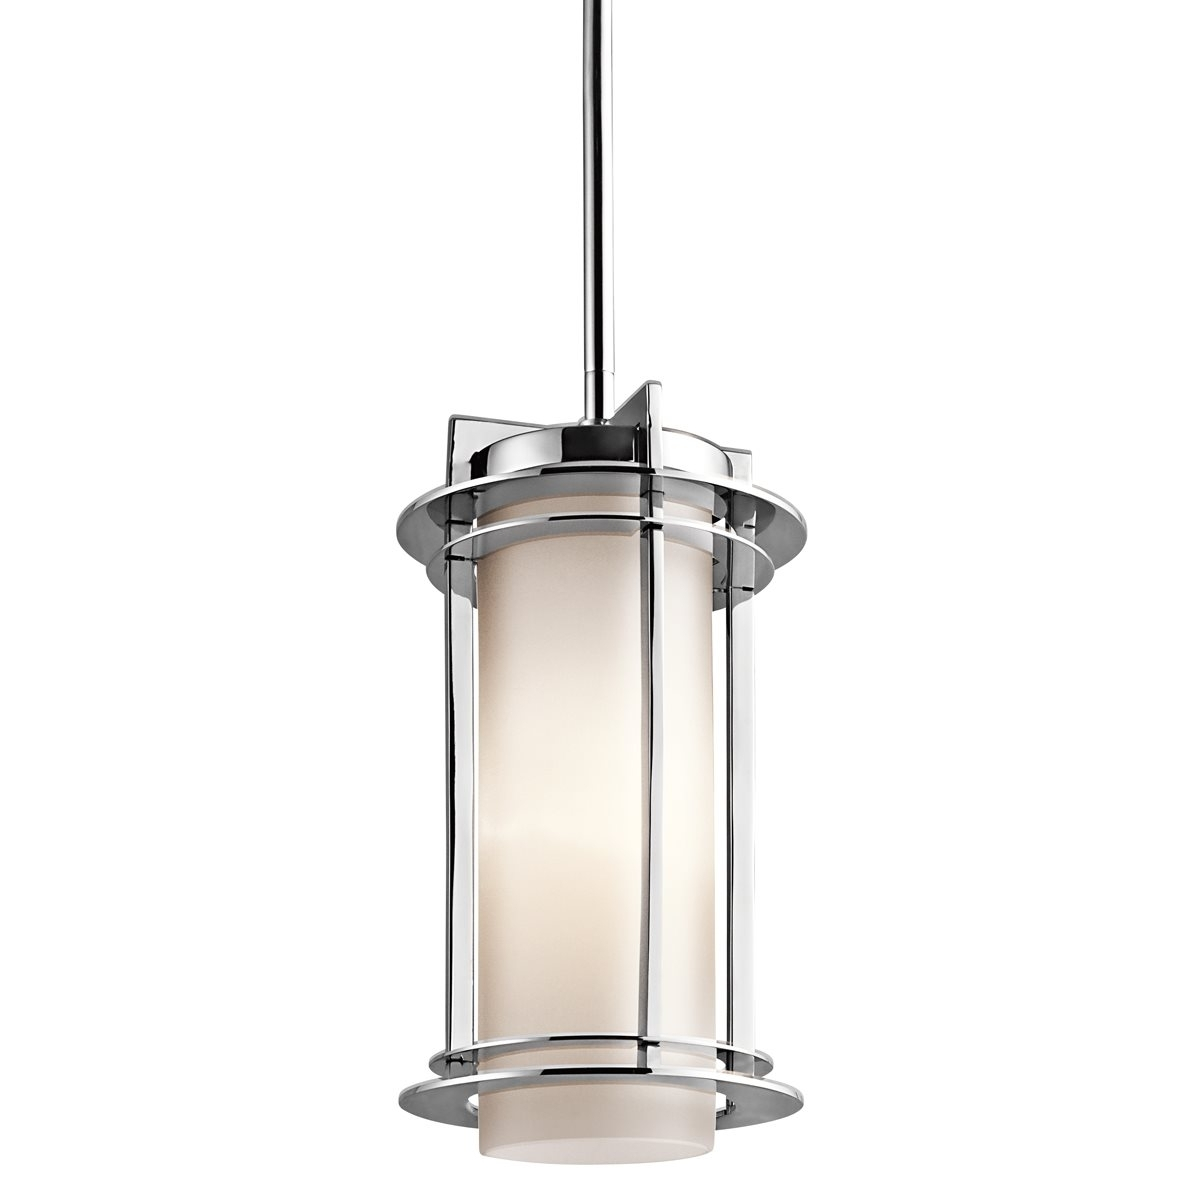 Contemporary Outdoor Hanging Light Fixtures • Outdoor Lighting With Regard To Outdoor Hanging Pendant Lights (#1 of 15)